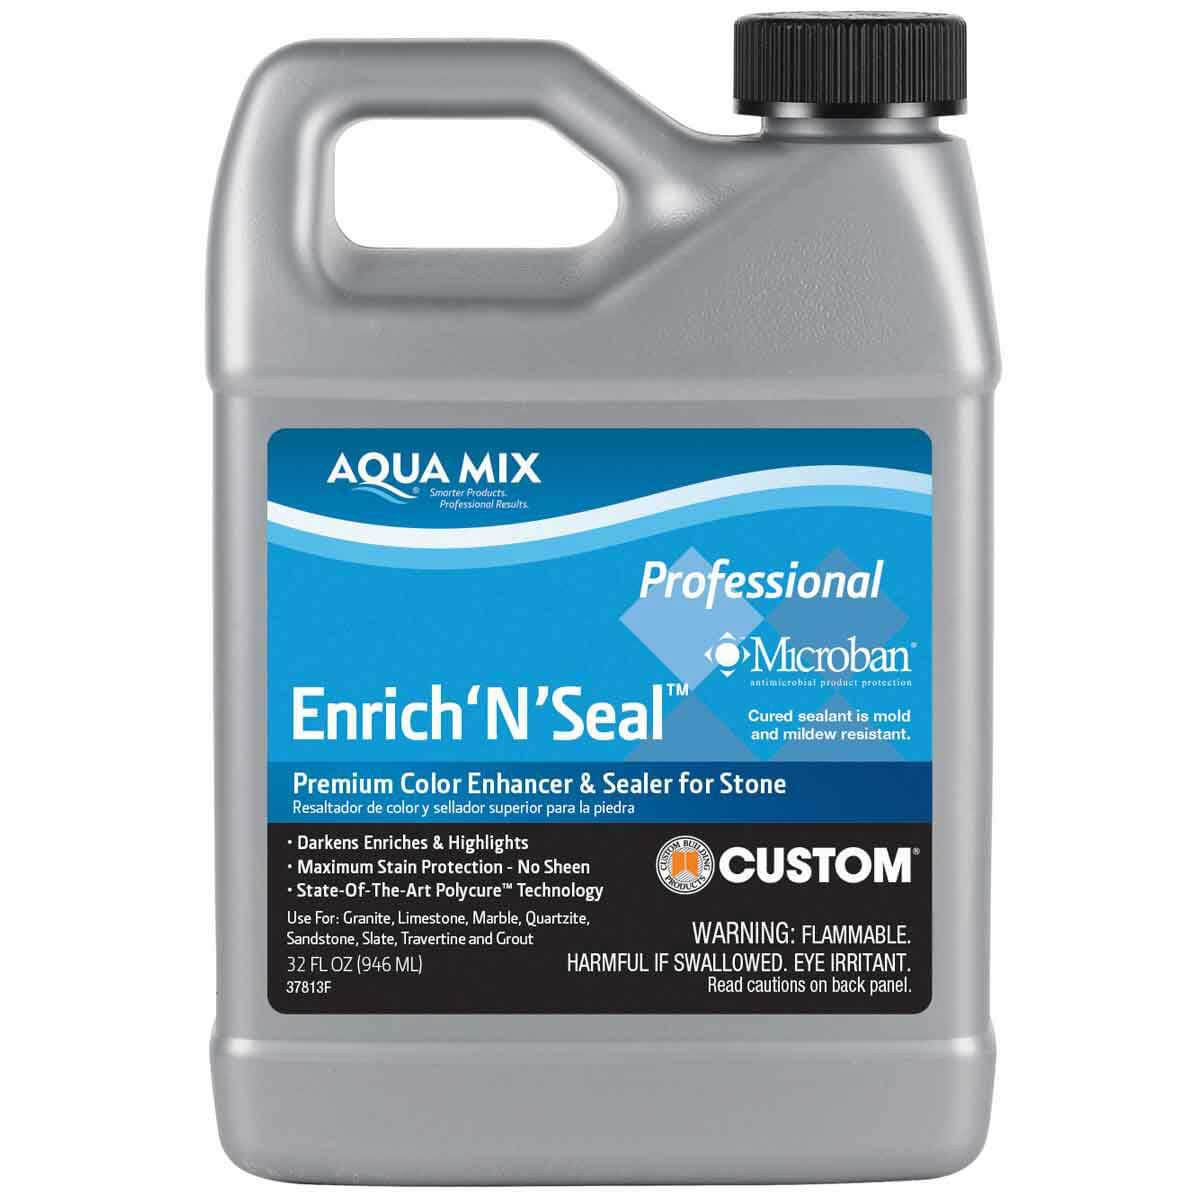 1 Quart Aqua Mix Enrich'N'Seal Penetrating Sealer 100251-4